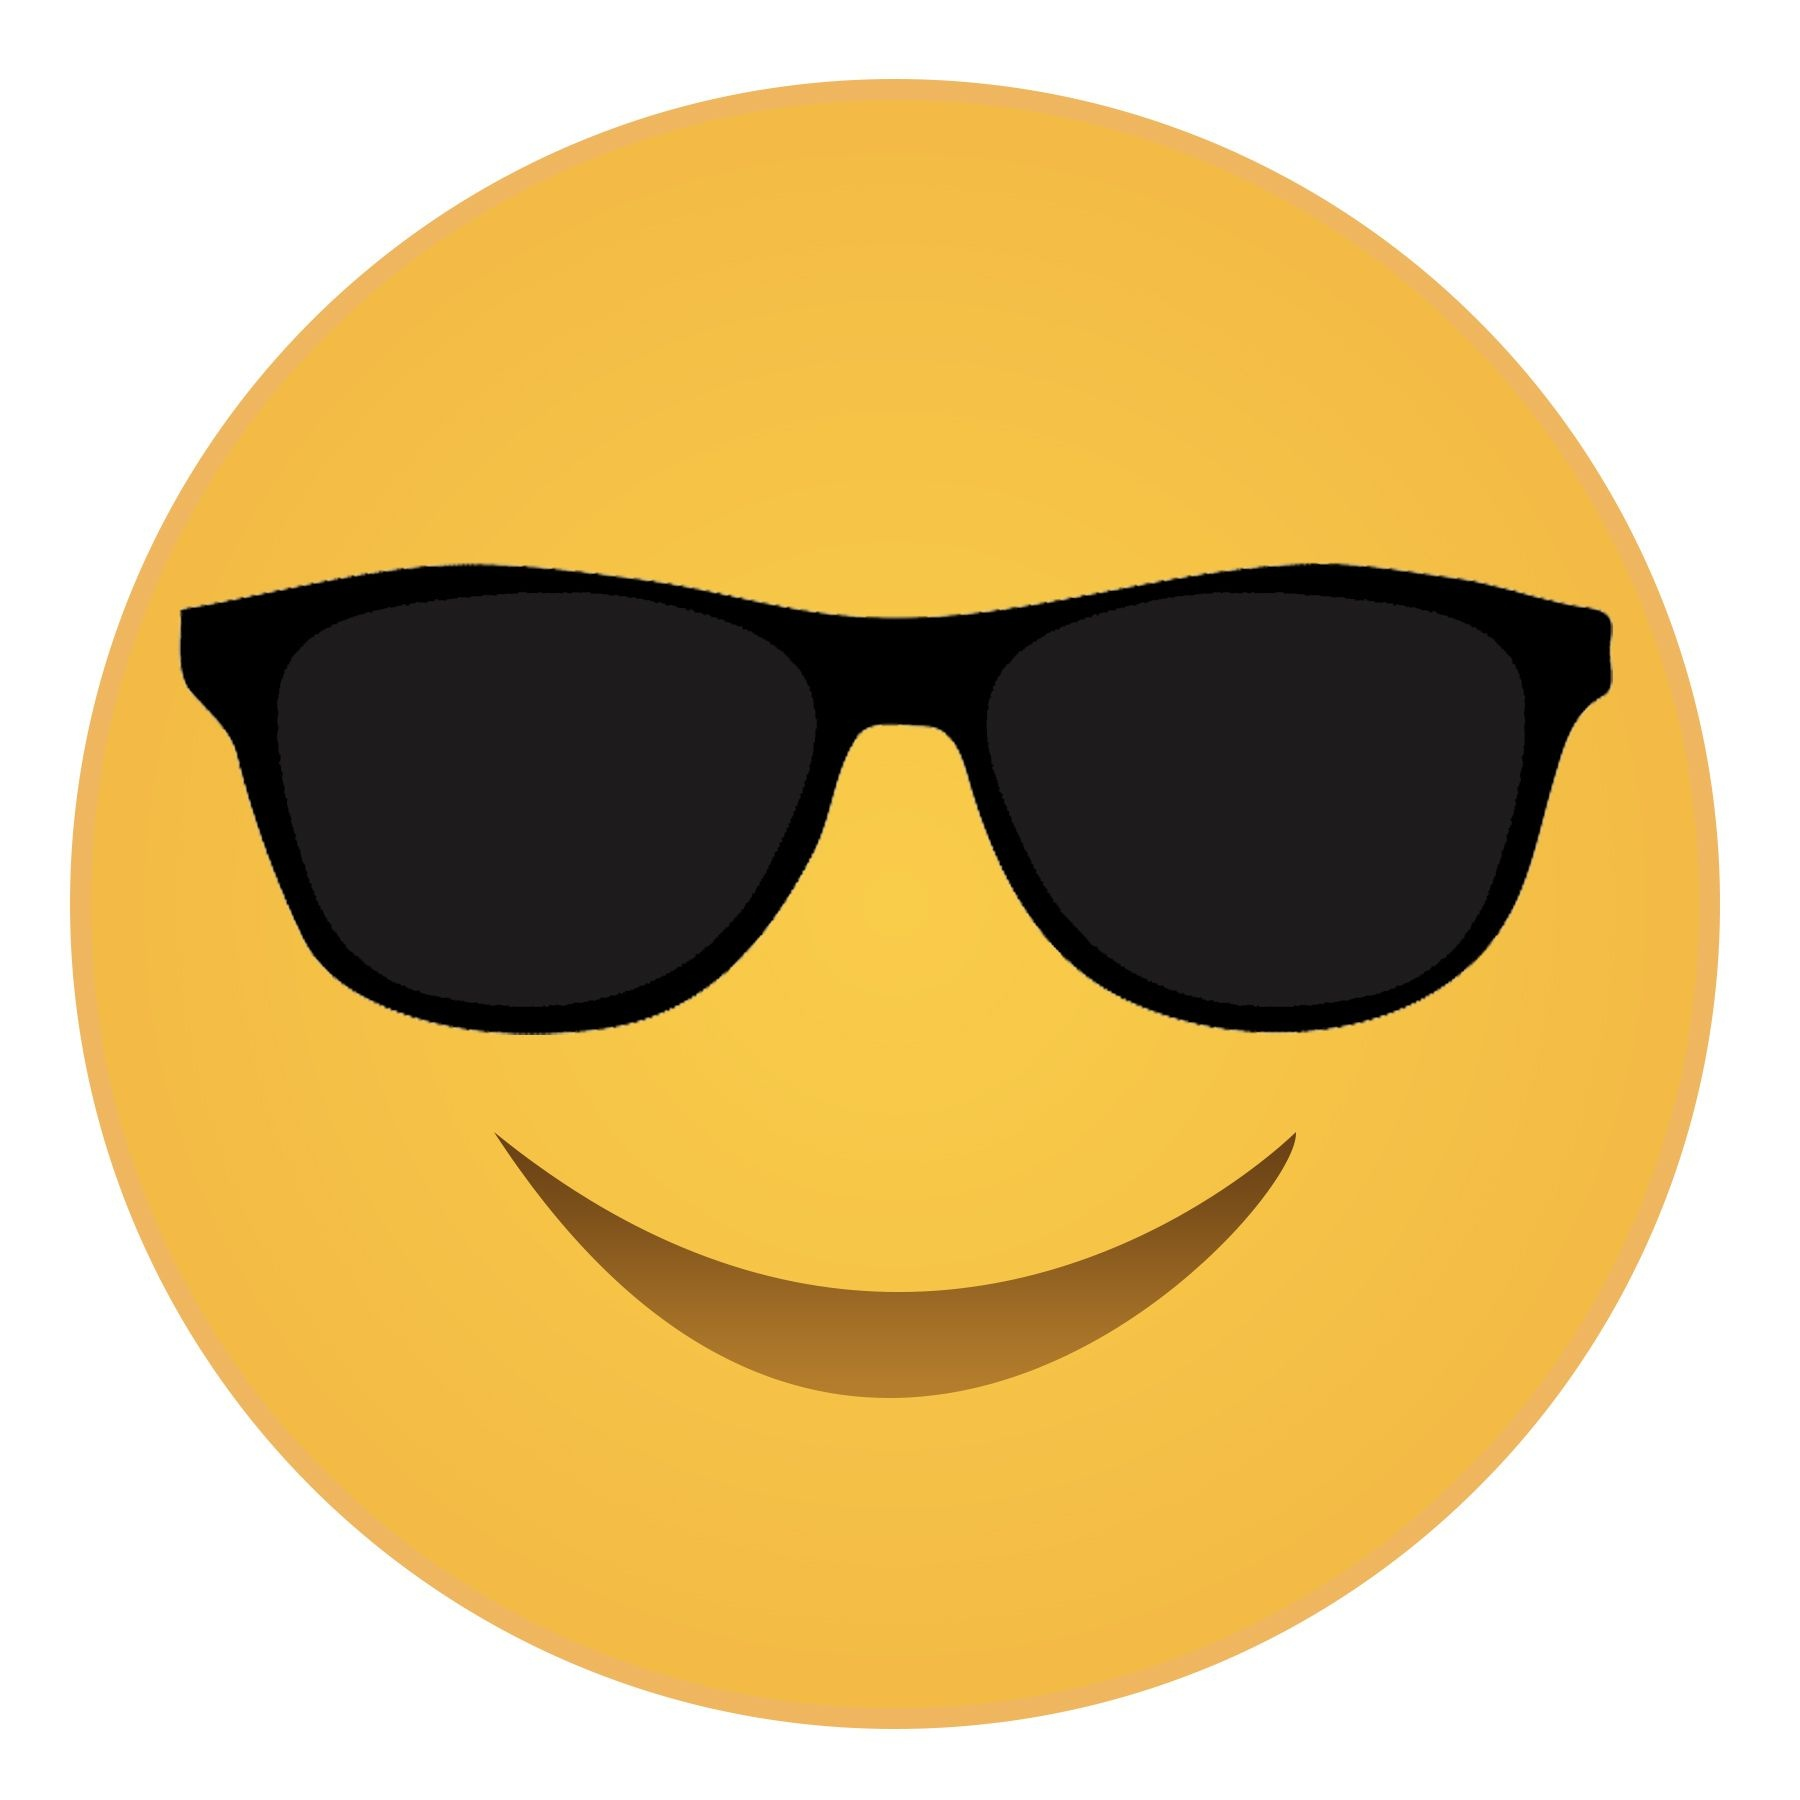 Pindebbie Jones On Happiness! | Emoji Decorations, Free Emoji - Free Printable Emoji Faces